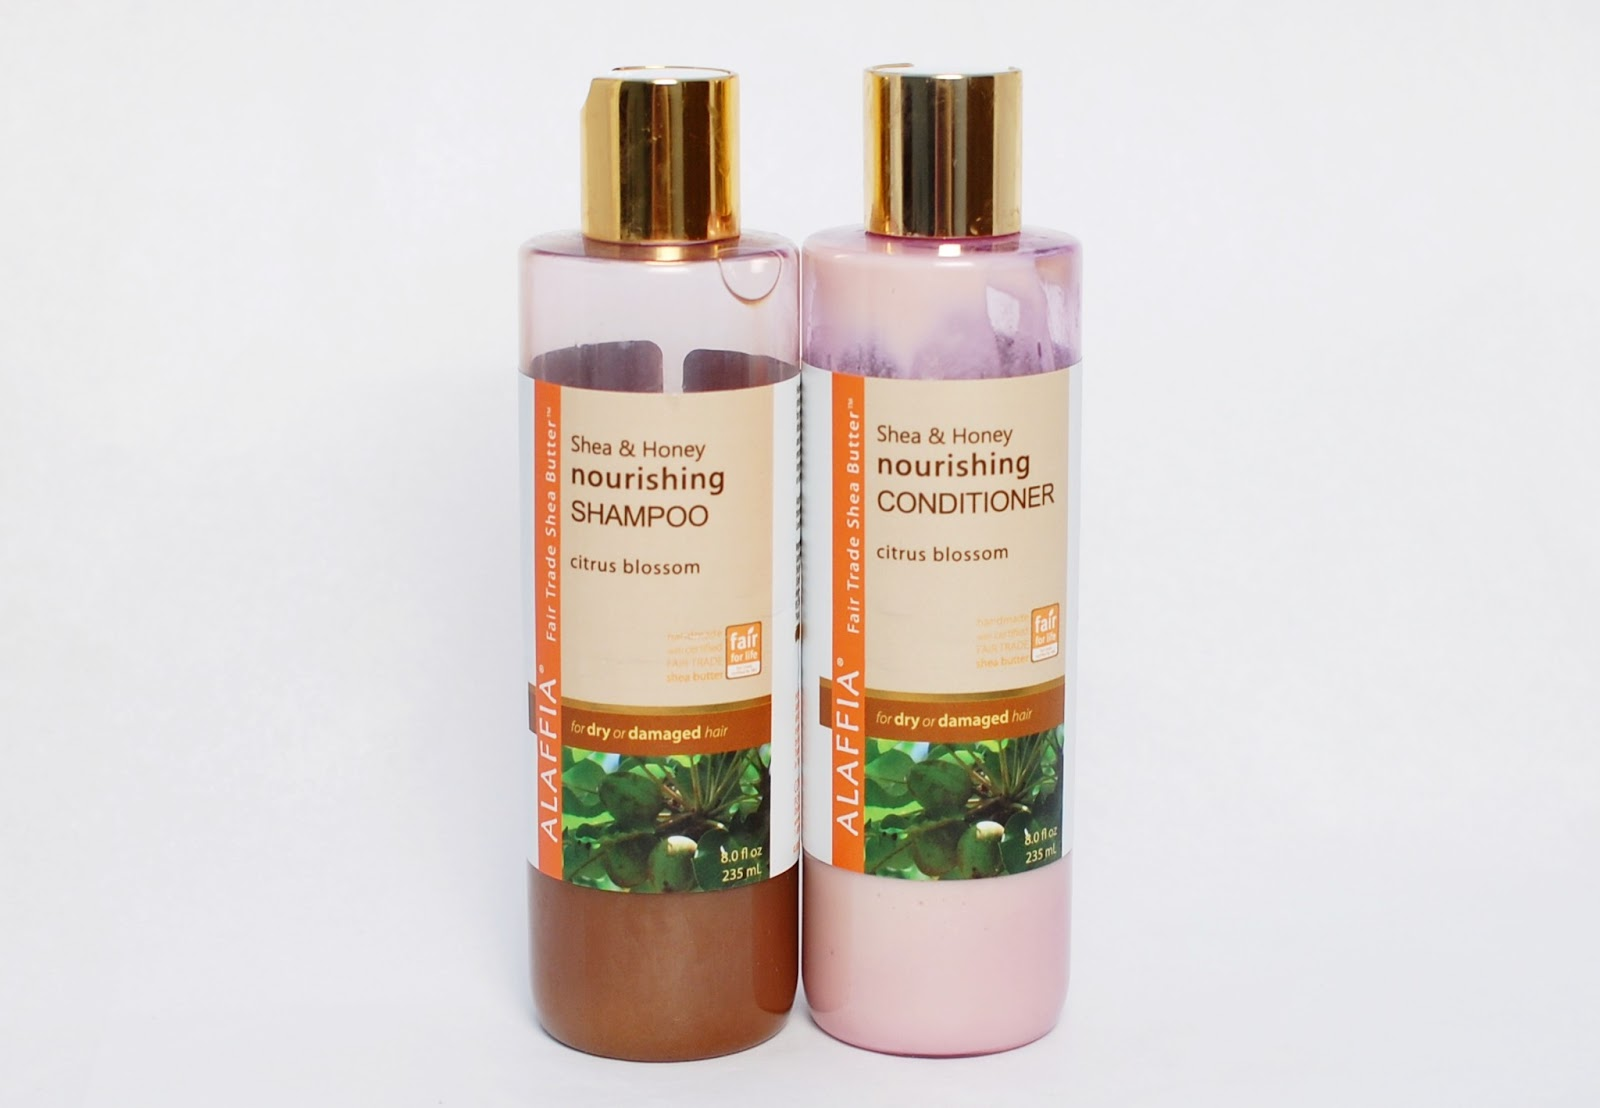 Alaffia Shea&Honey Nourishing Shampoo and Conditioner